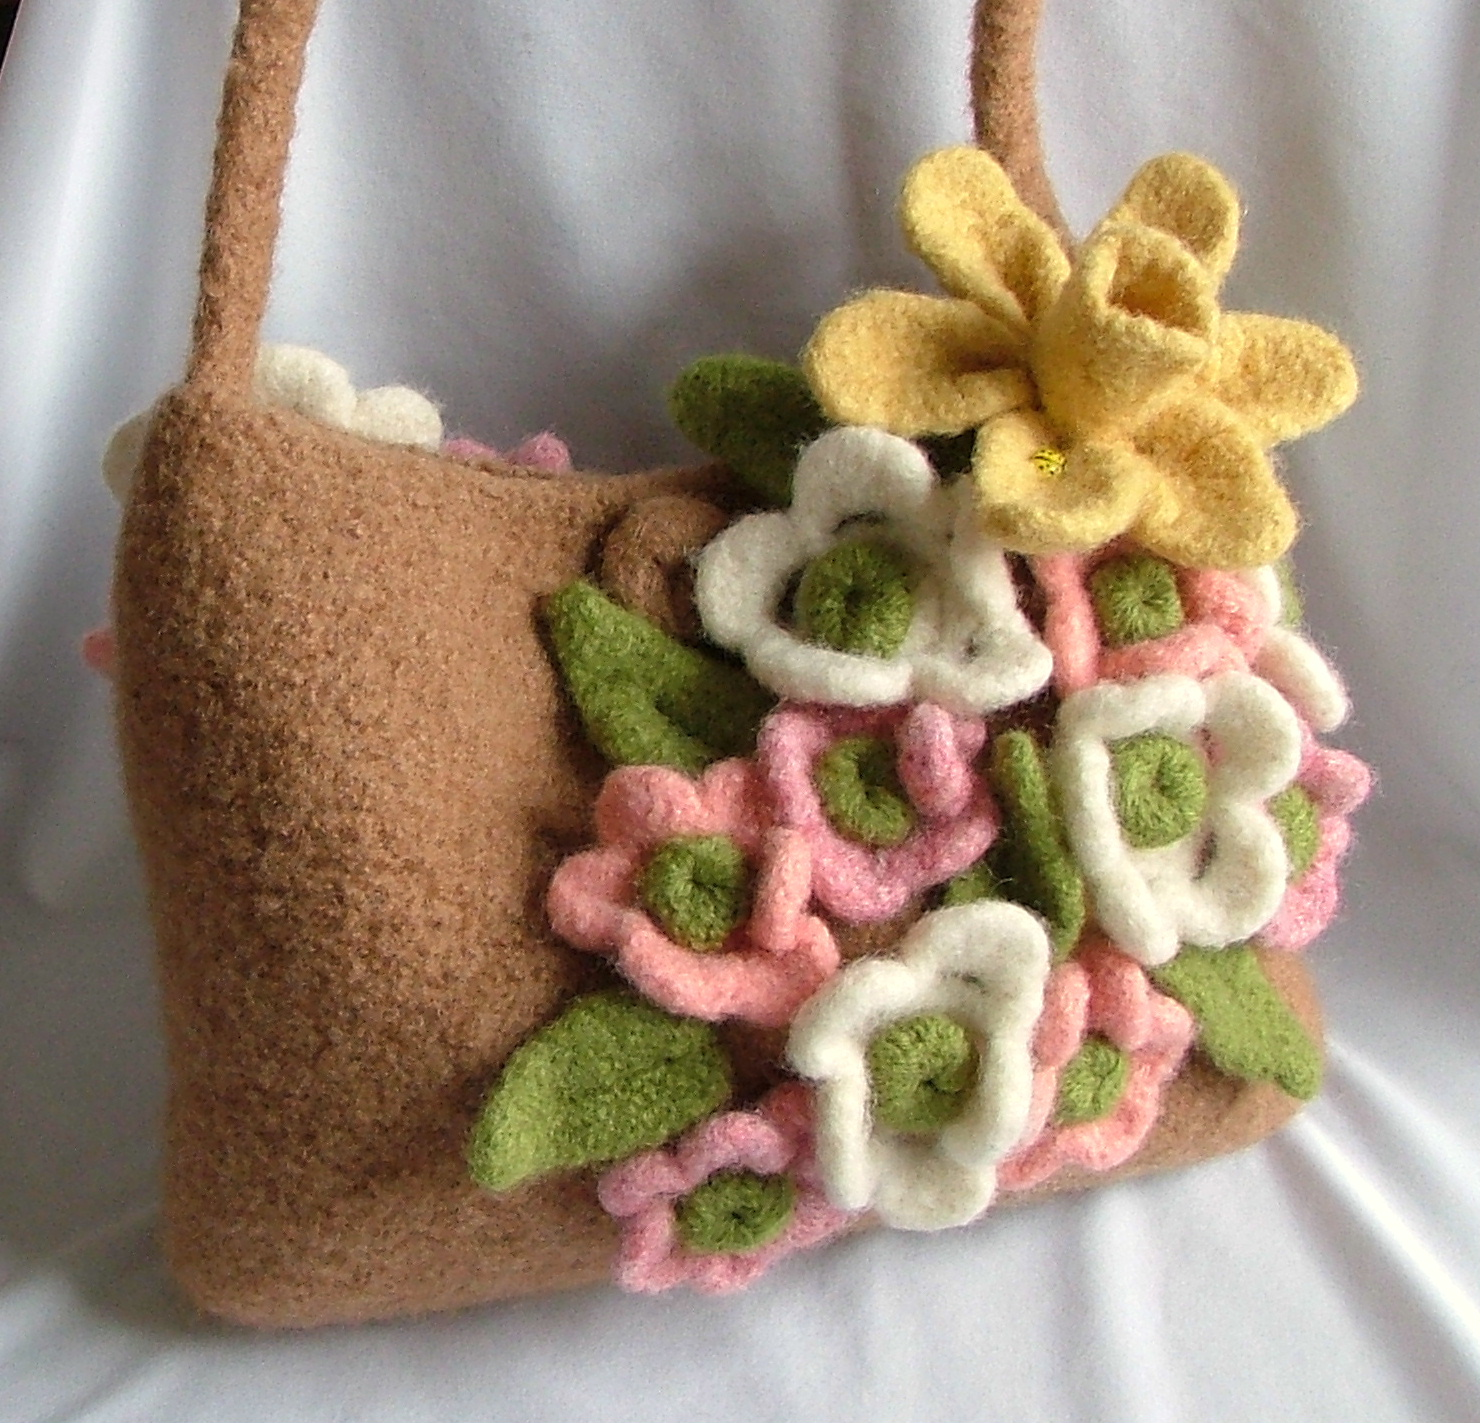 Felted wool crocheted purses